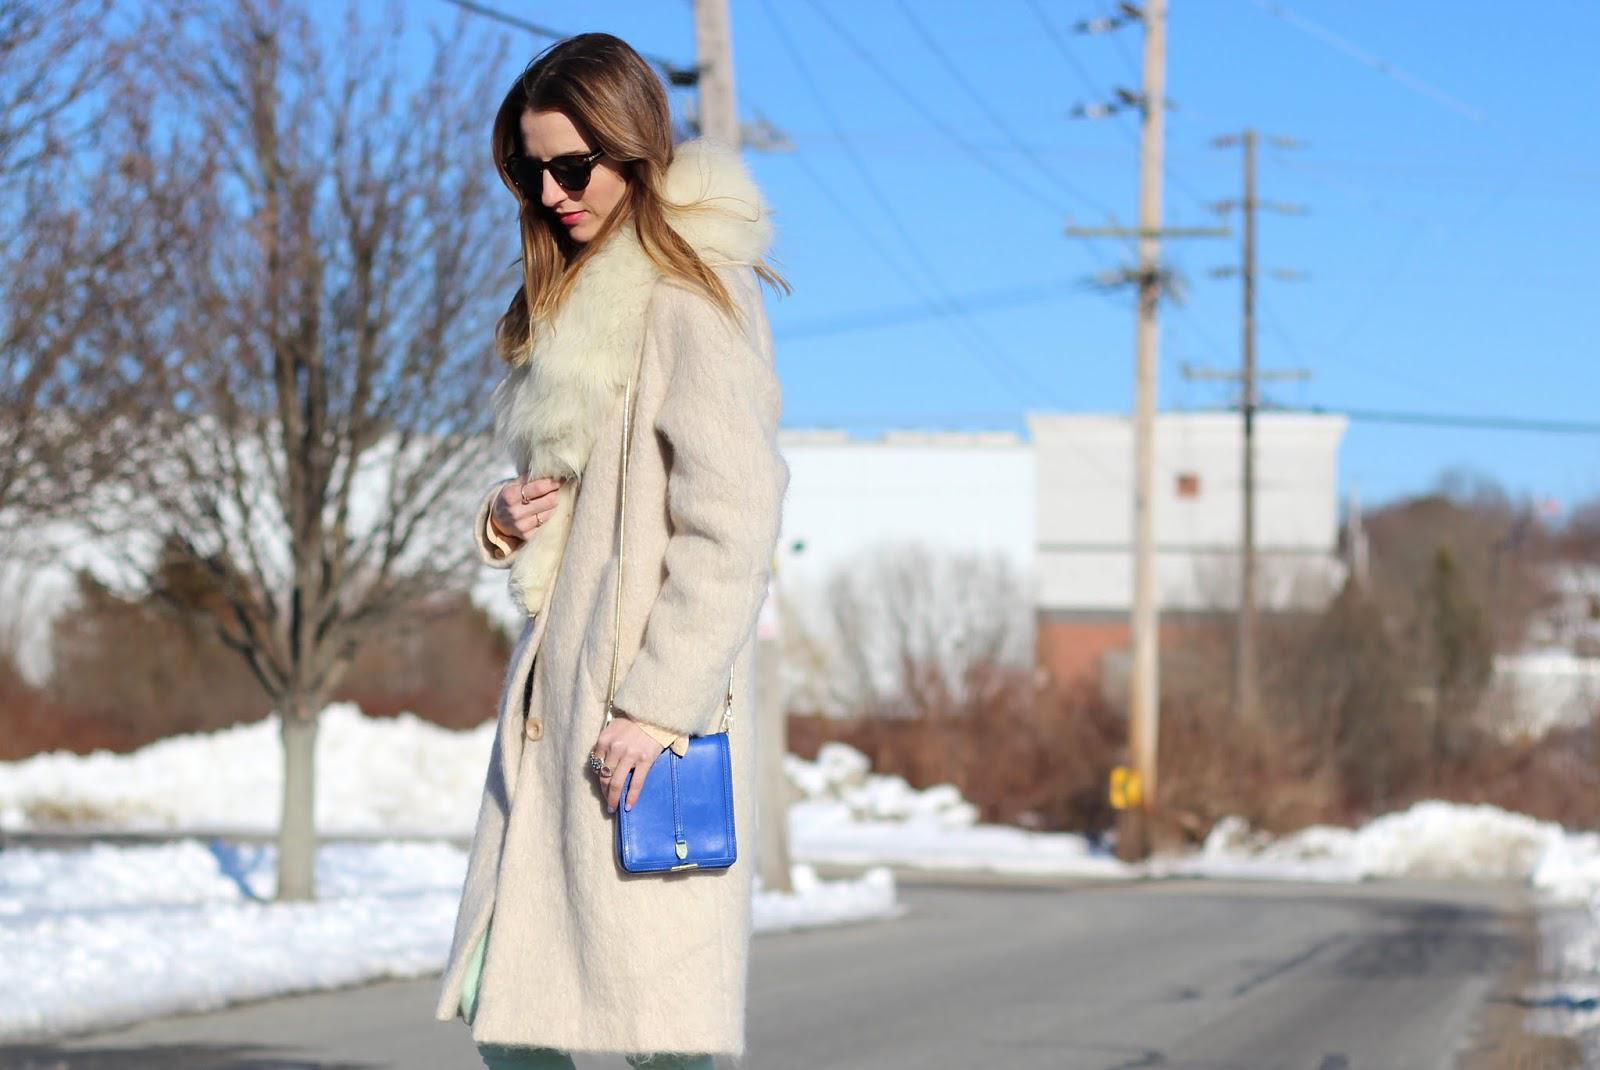 How to take your winter coat from bleak to chic: http://t.co/jhmSHHIrfu http://t.co/QwePXolhza